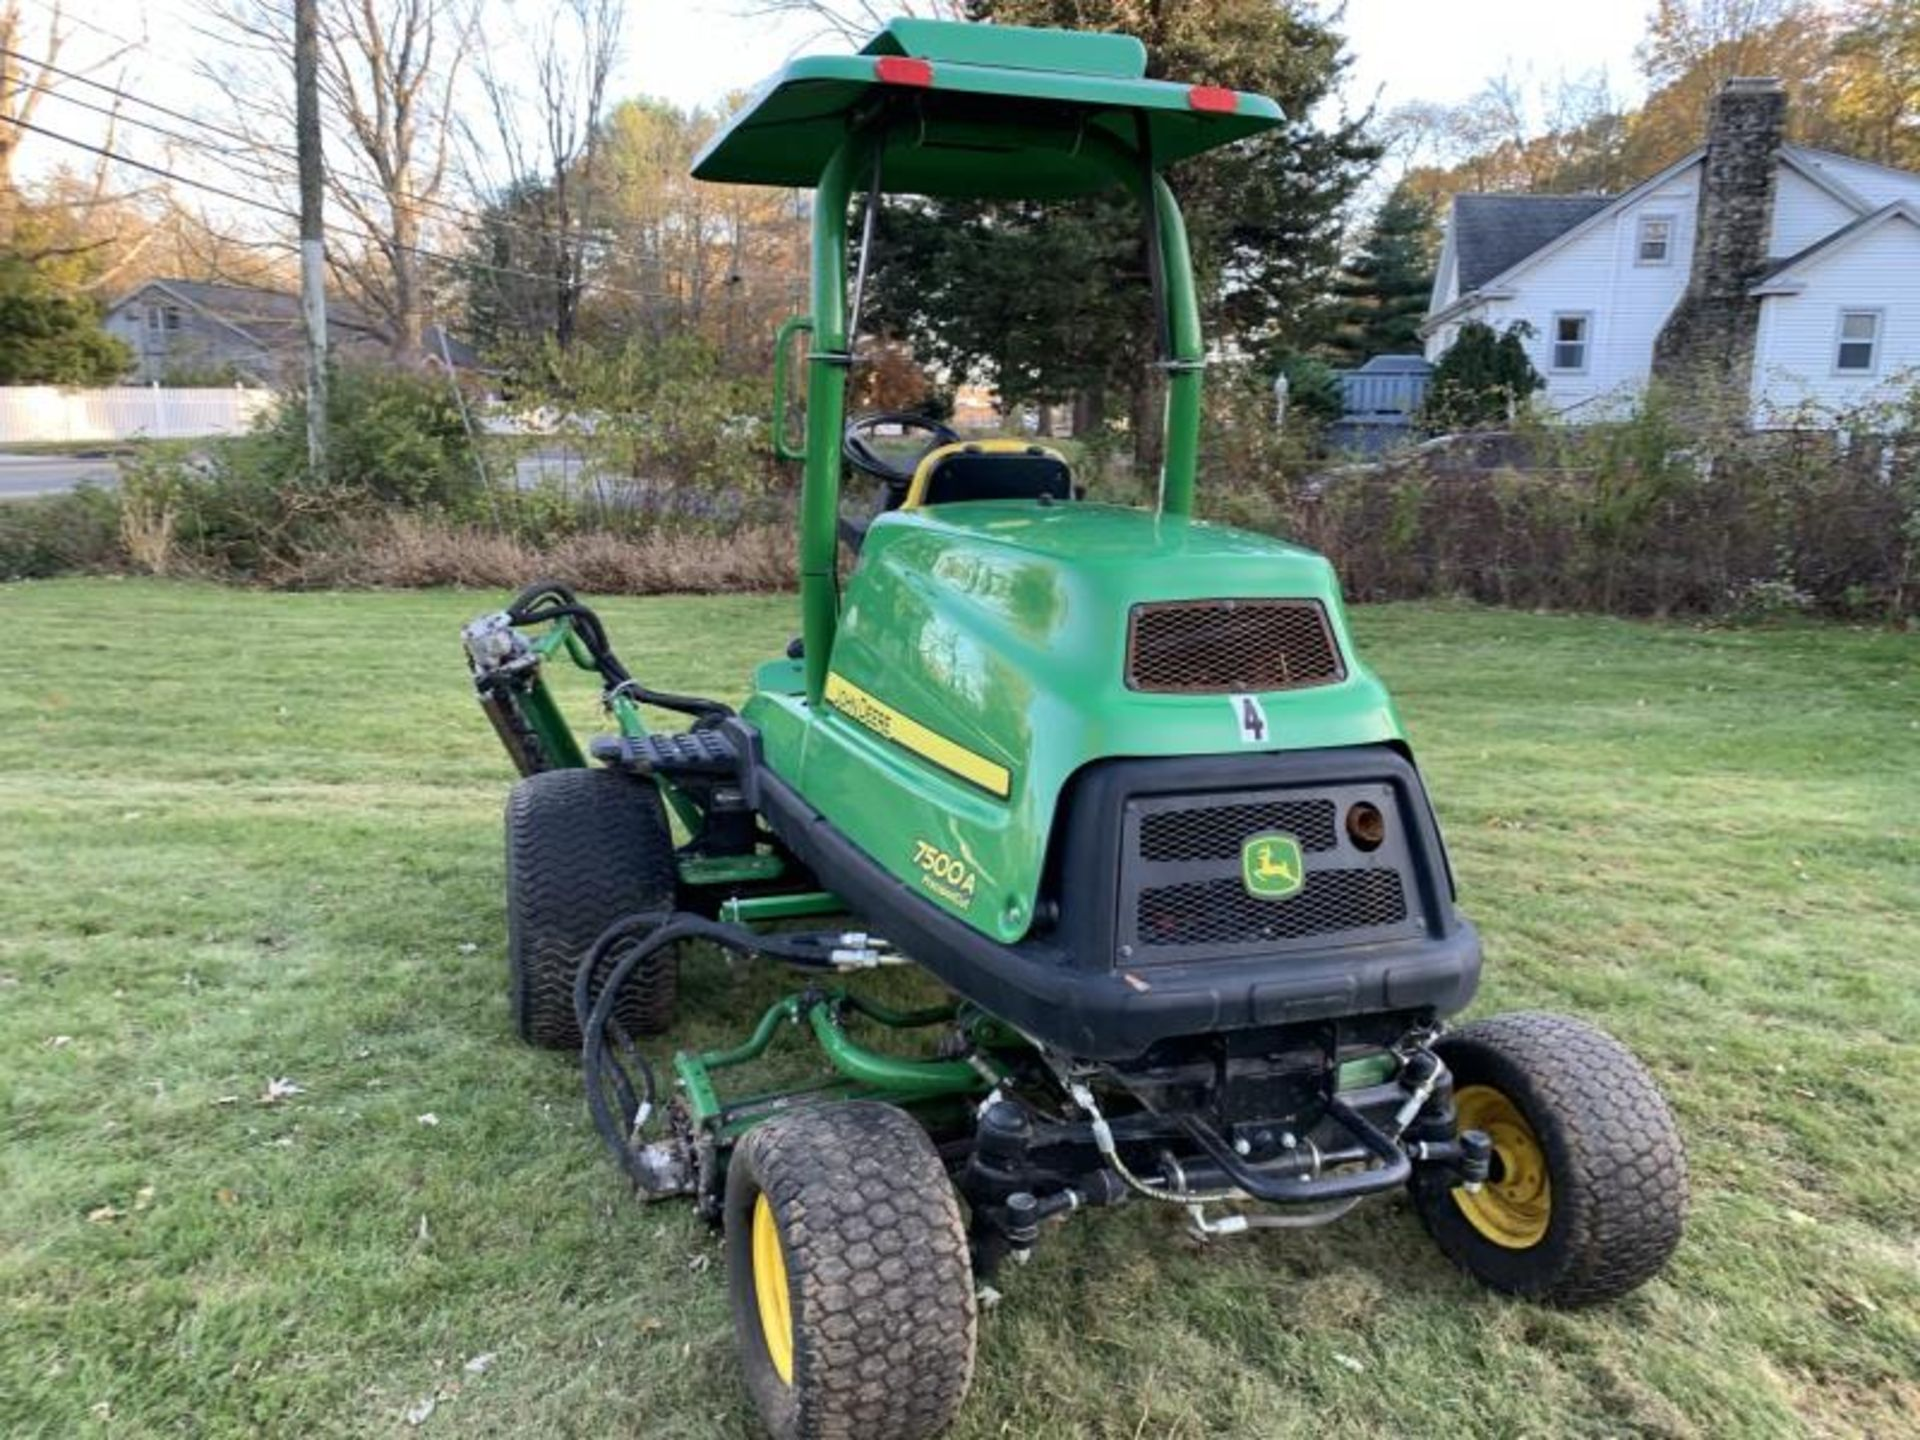 2016 John Deere 7500A Precision Cut 2WD T4, 2,355 Hours, SN: 1TC750AVLGR030141 - Image 17 of 17